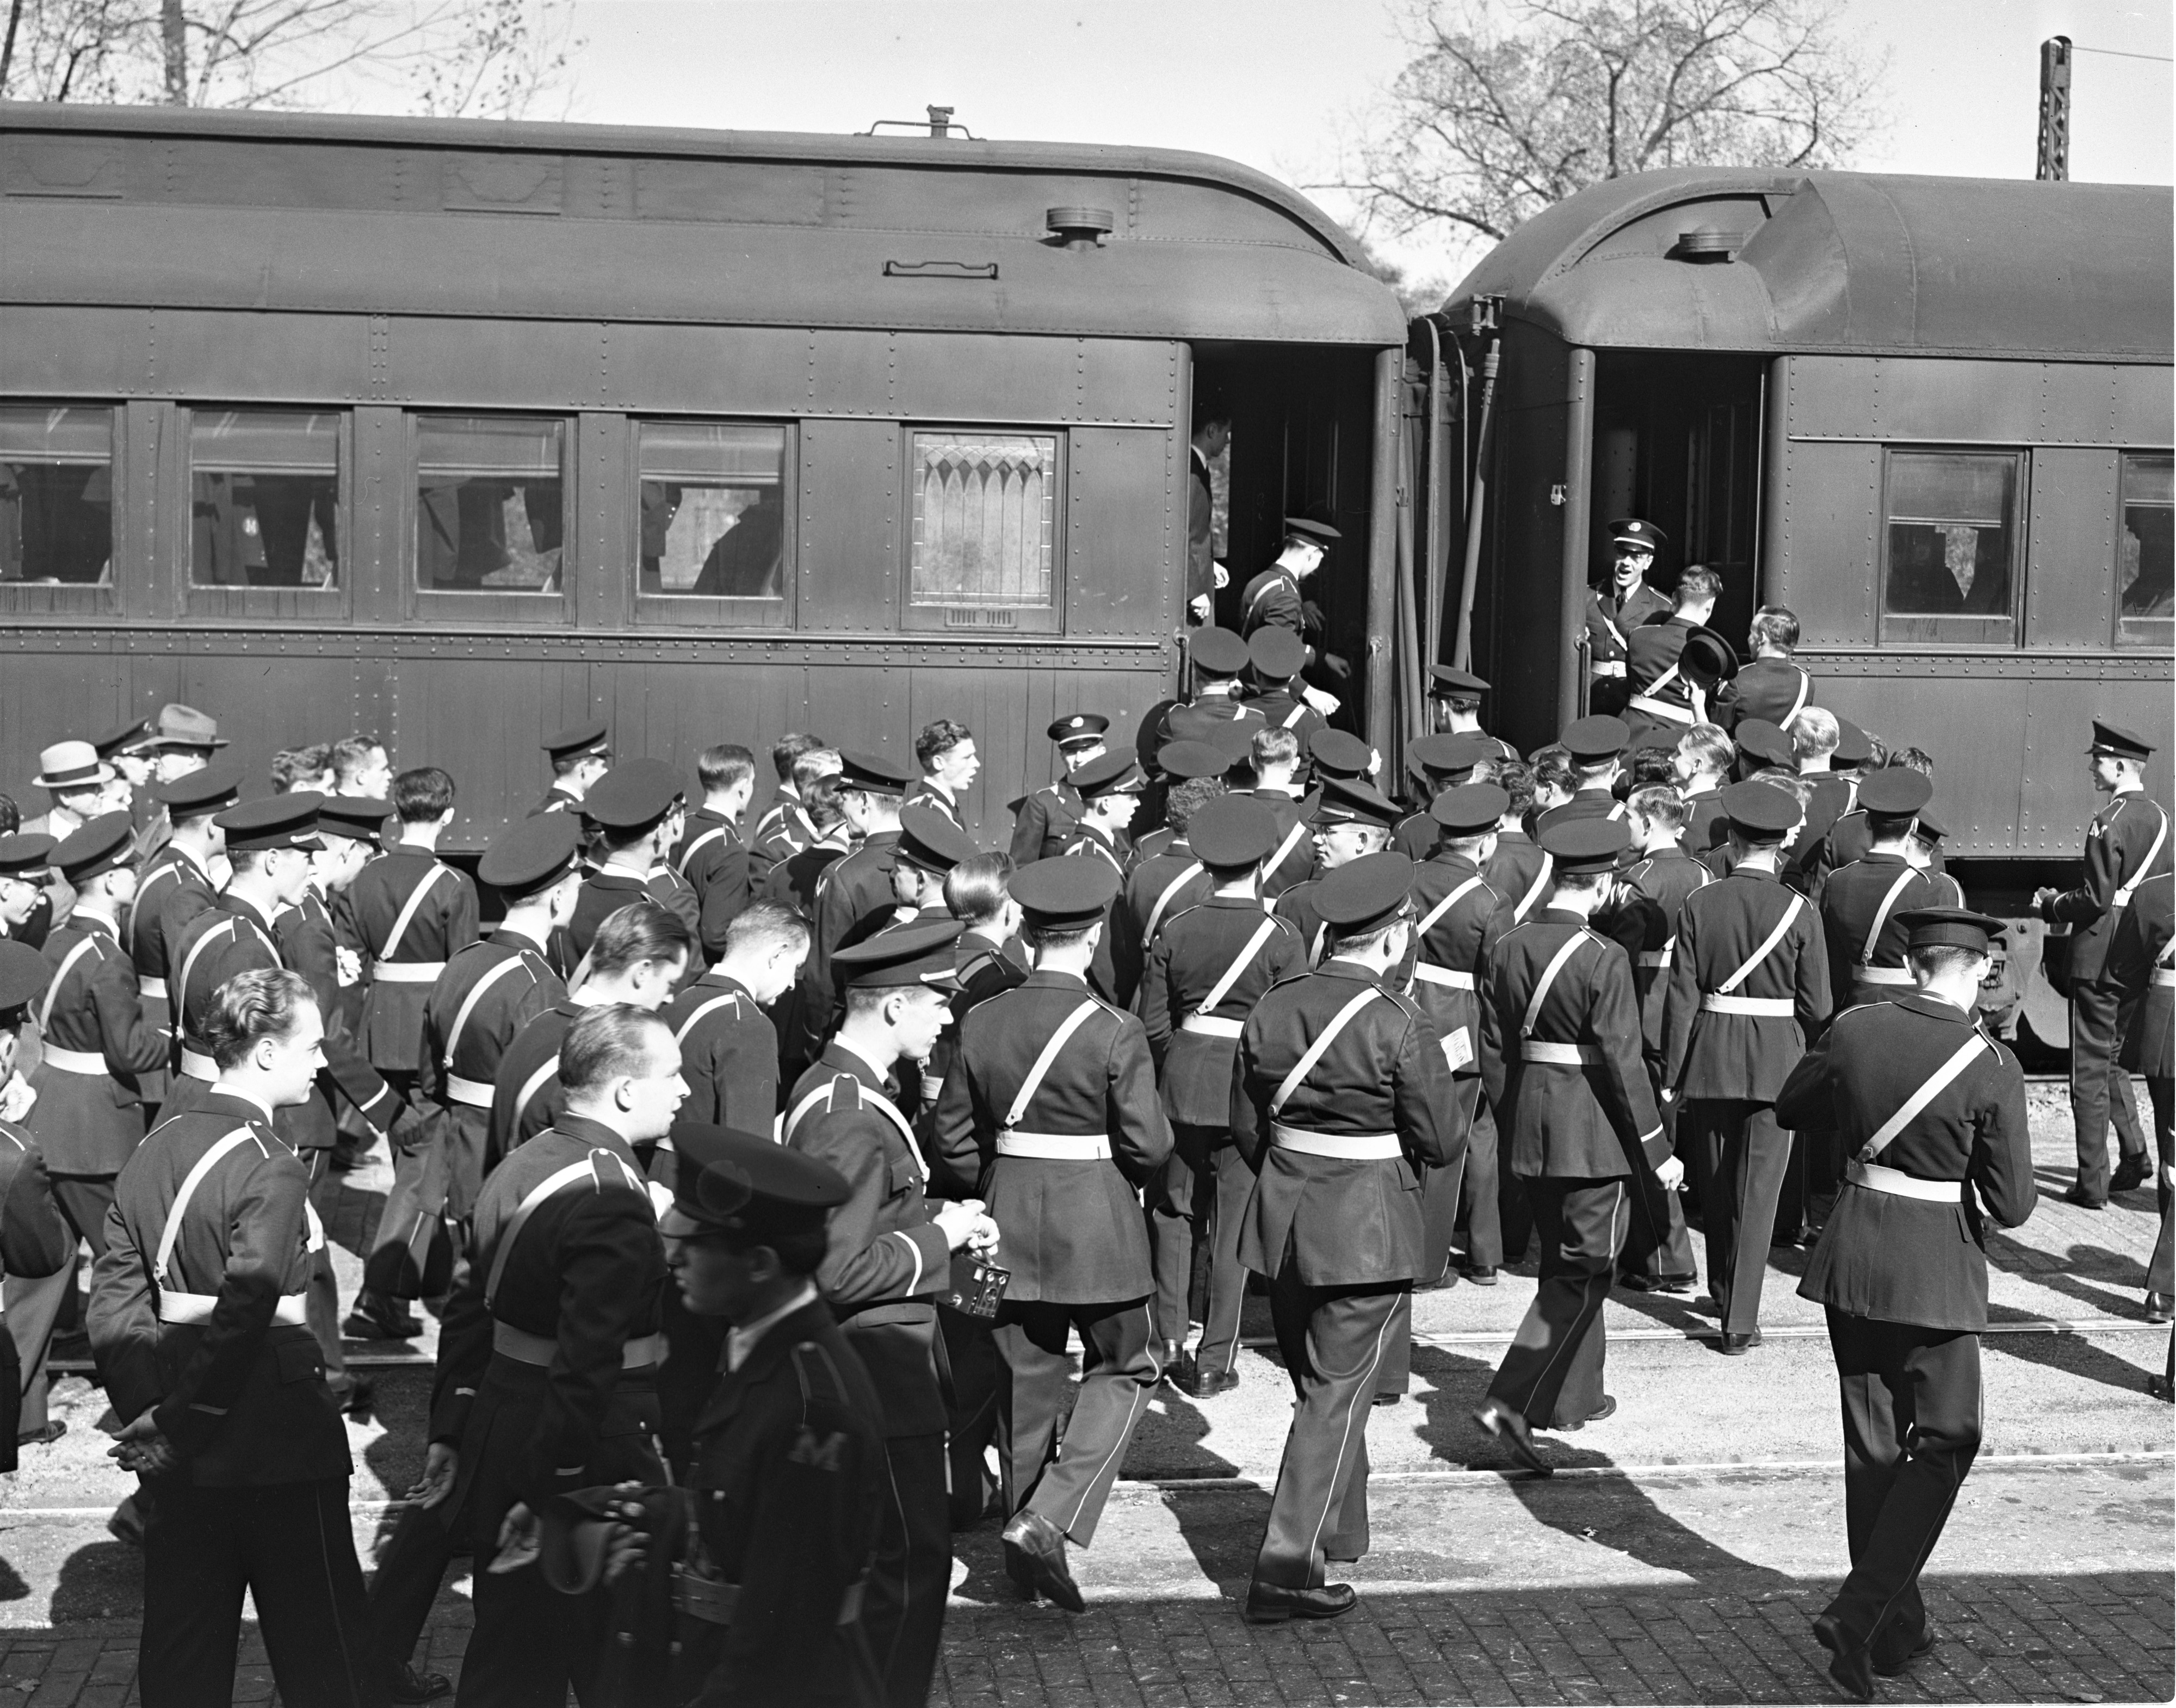 University of Michigan Marching Band Boards Michigan Central Train For Chicago, October 1939 image